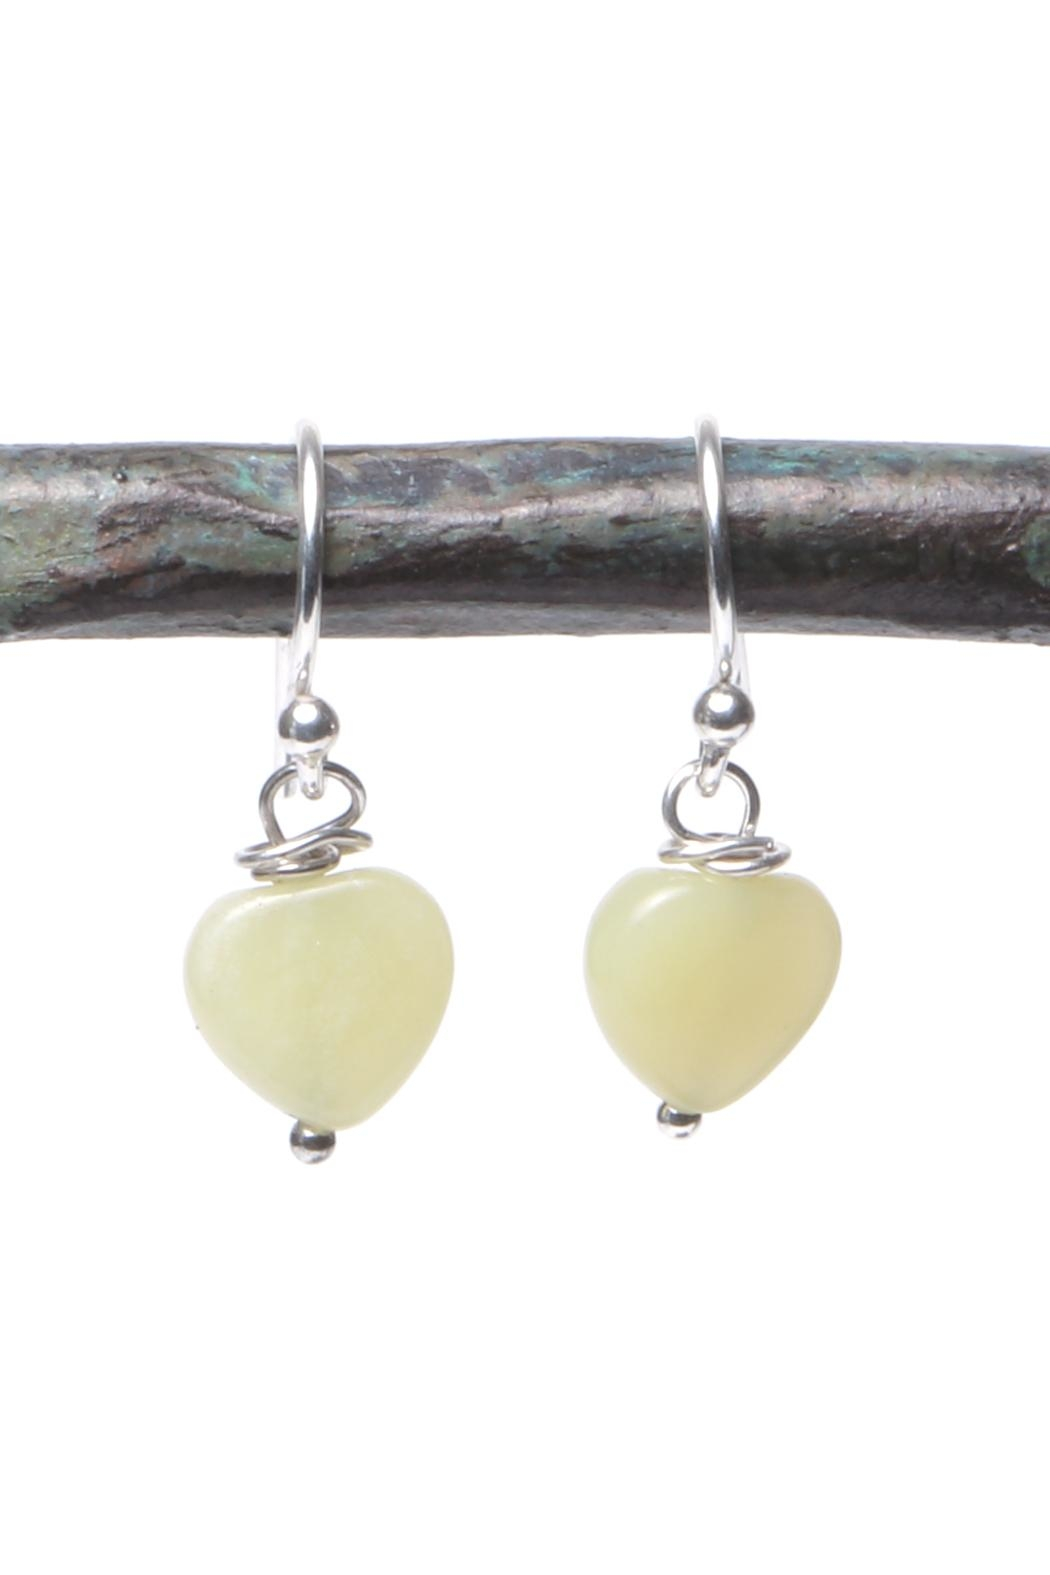 Cowgirl Chile Co. Jewelry Yellow Heart Earrings - Main Image